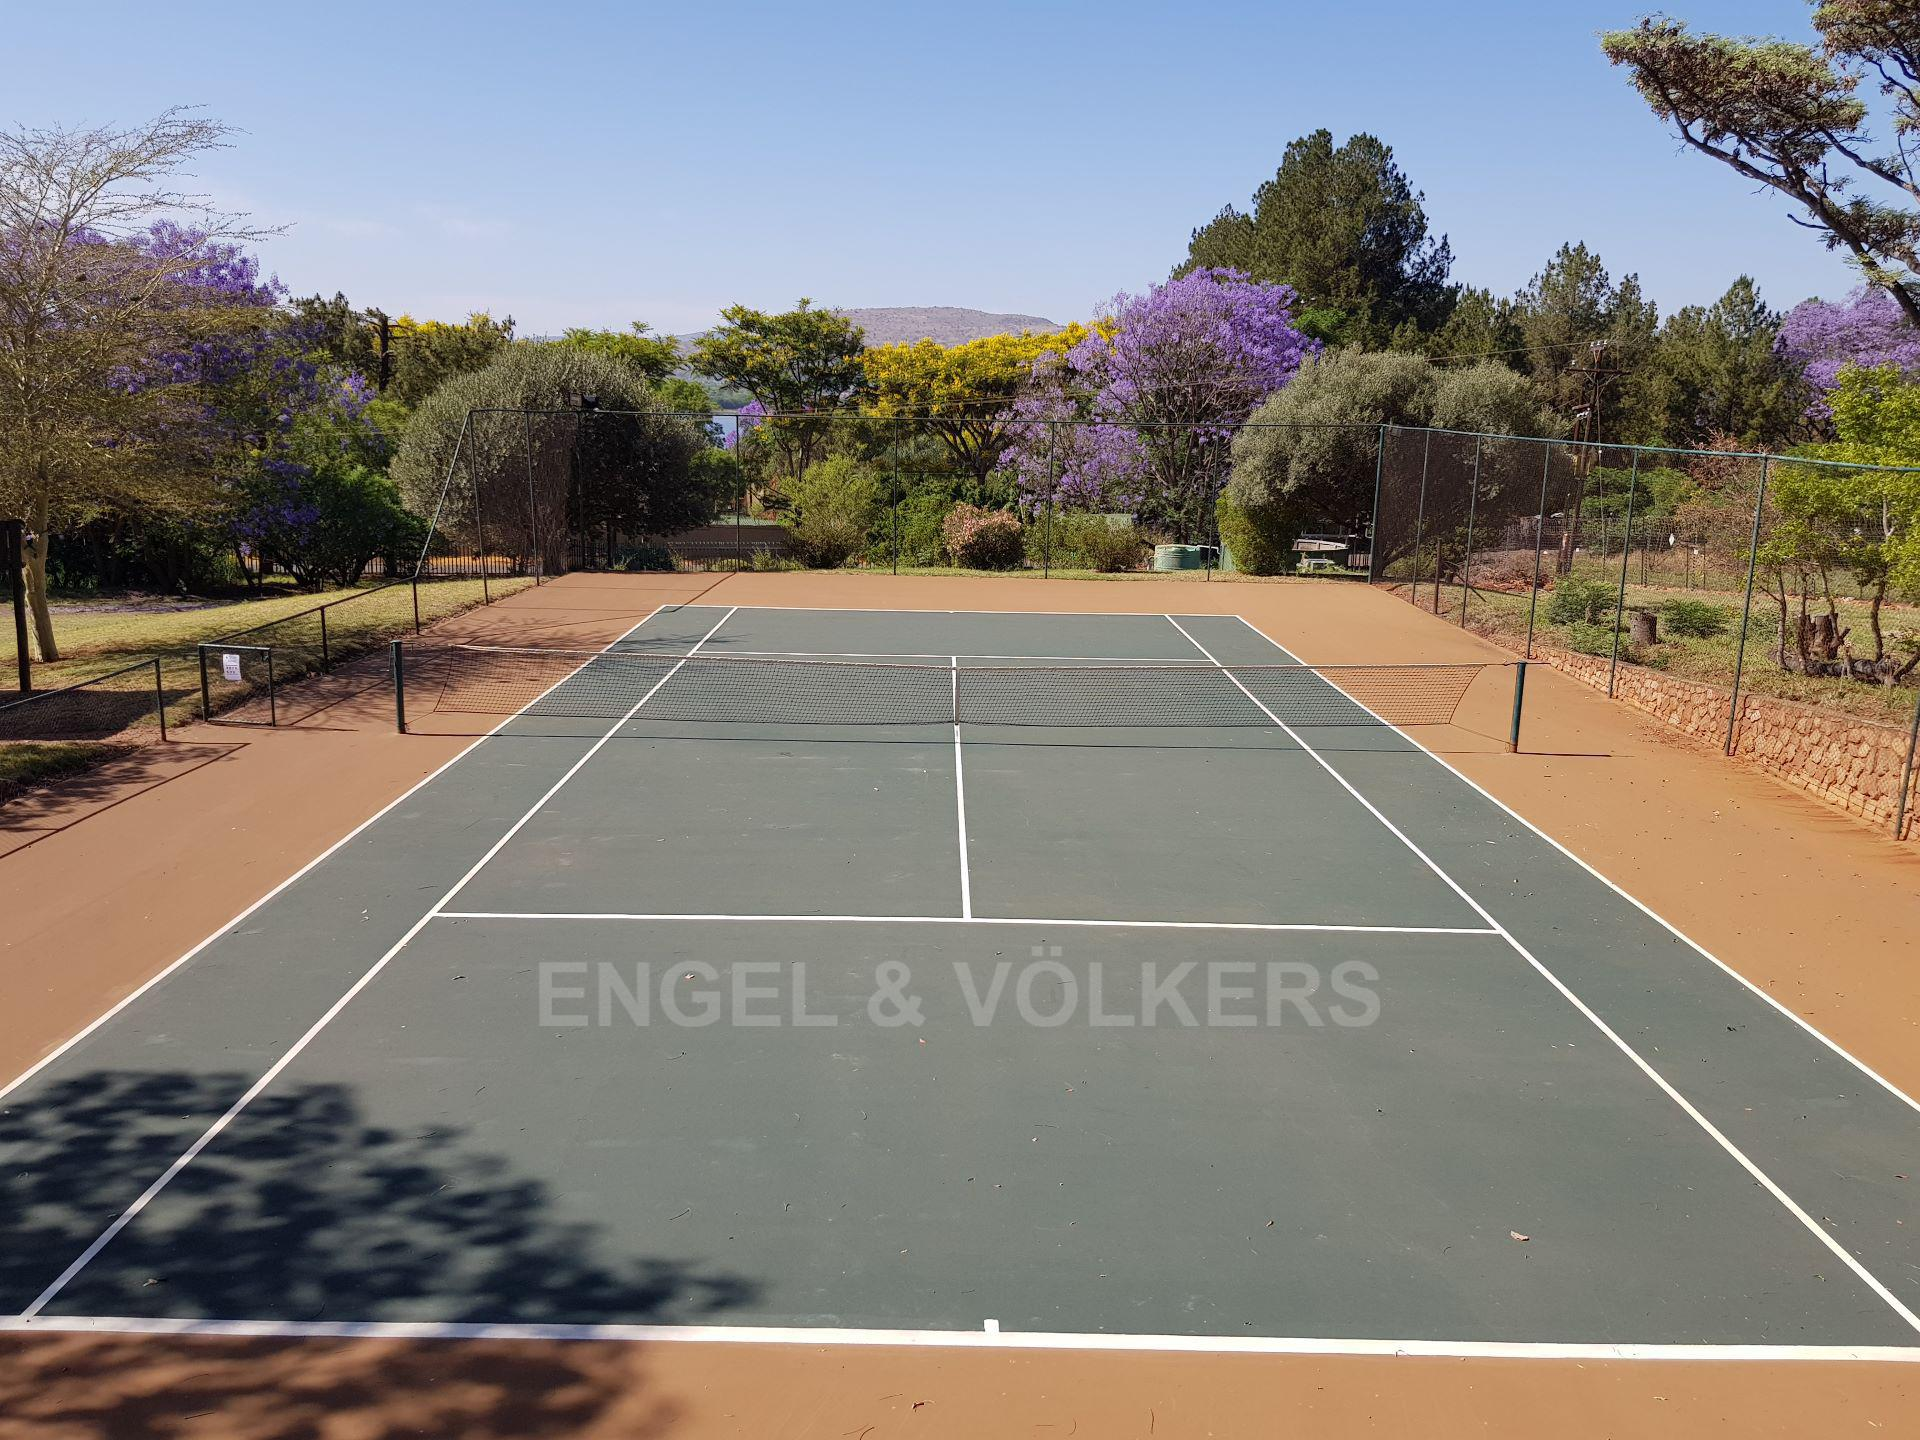 House in Mount Kos - Well maintained tennis court